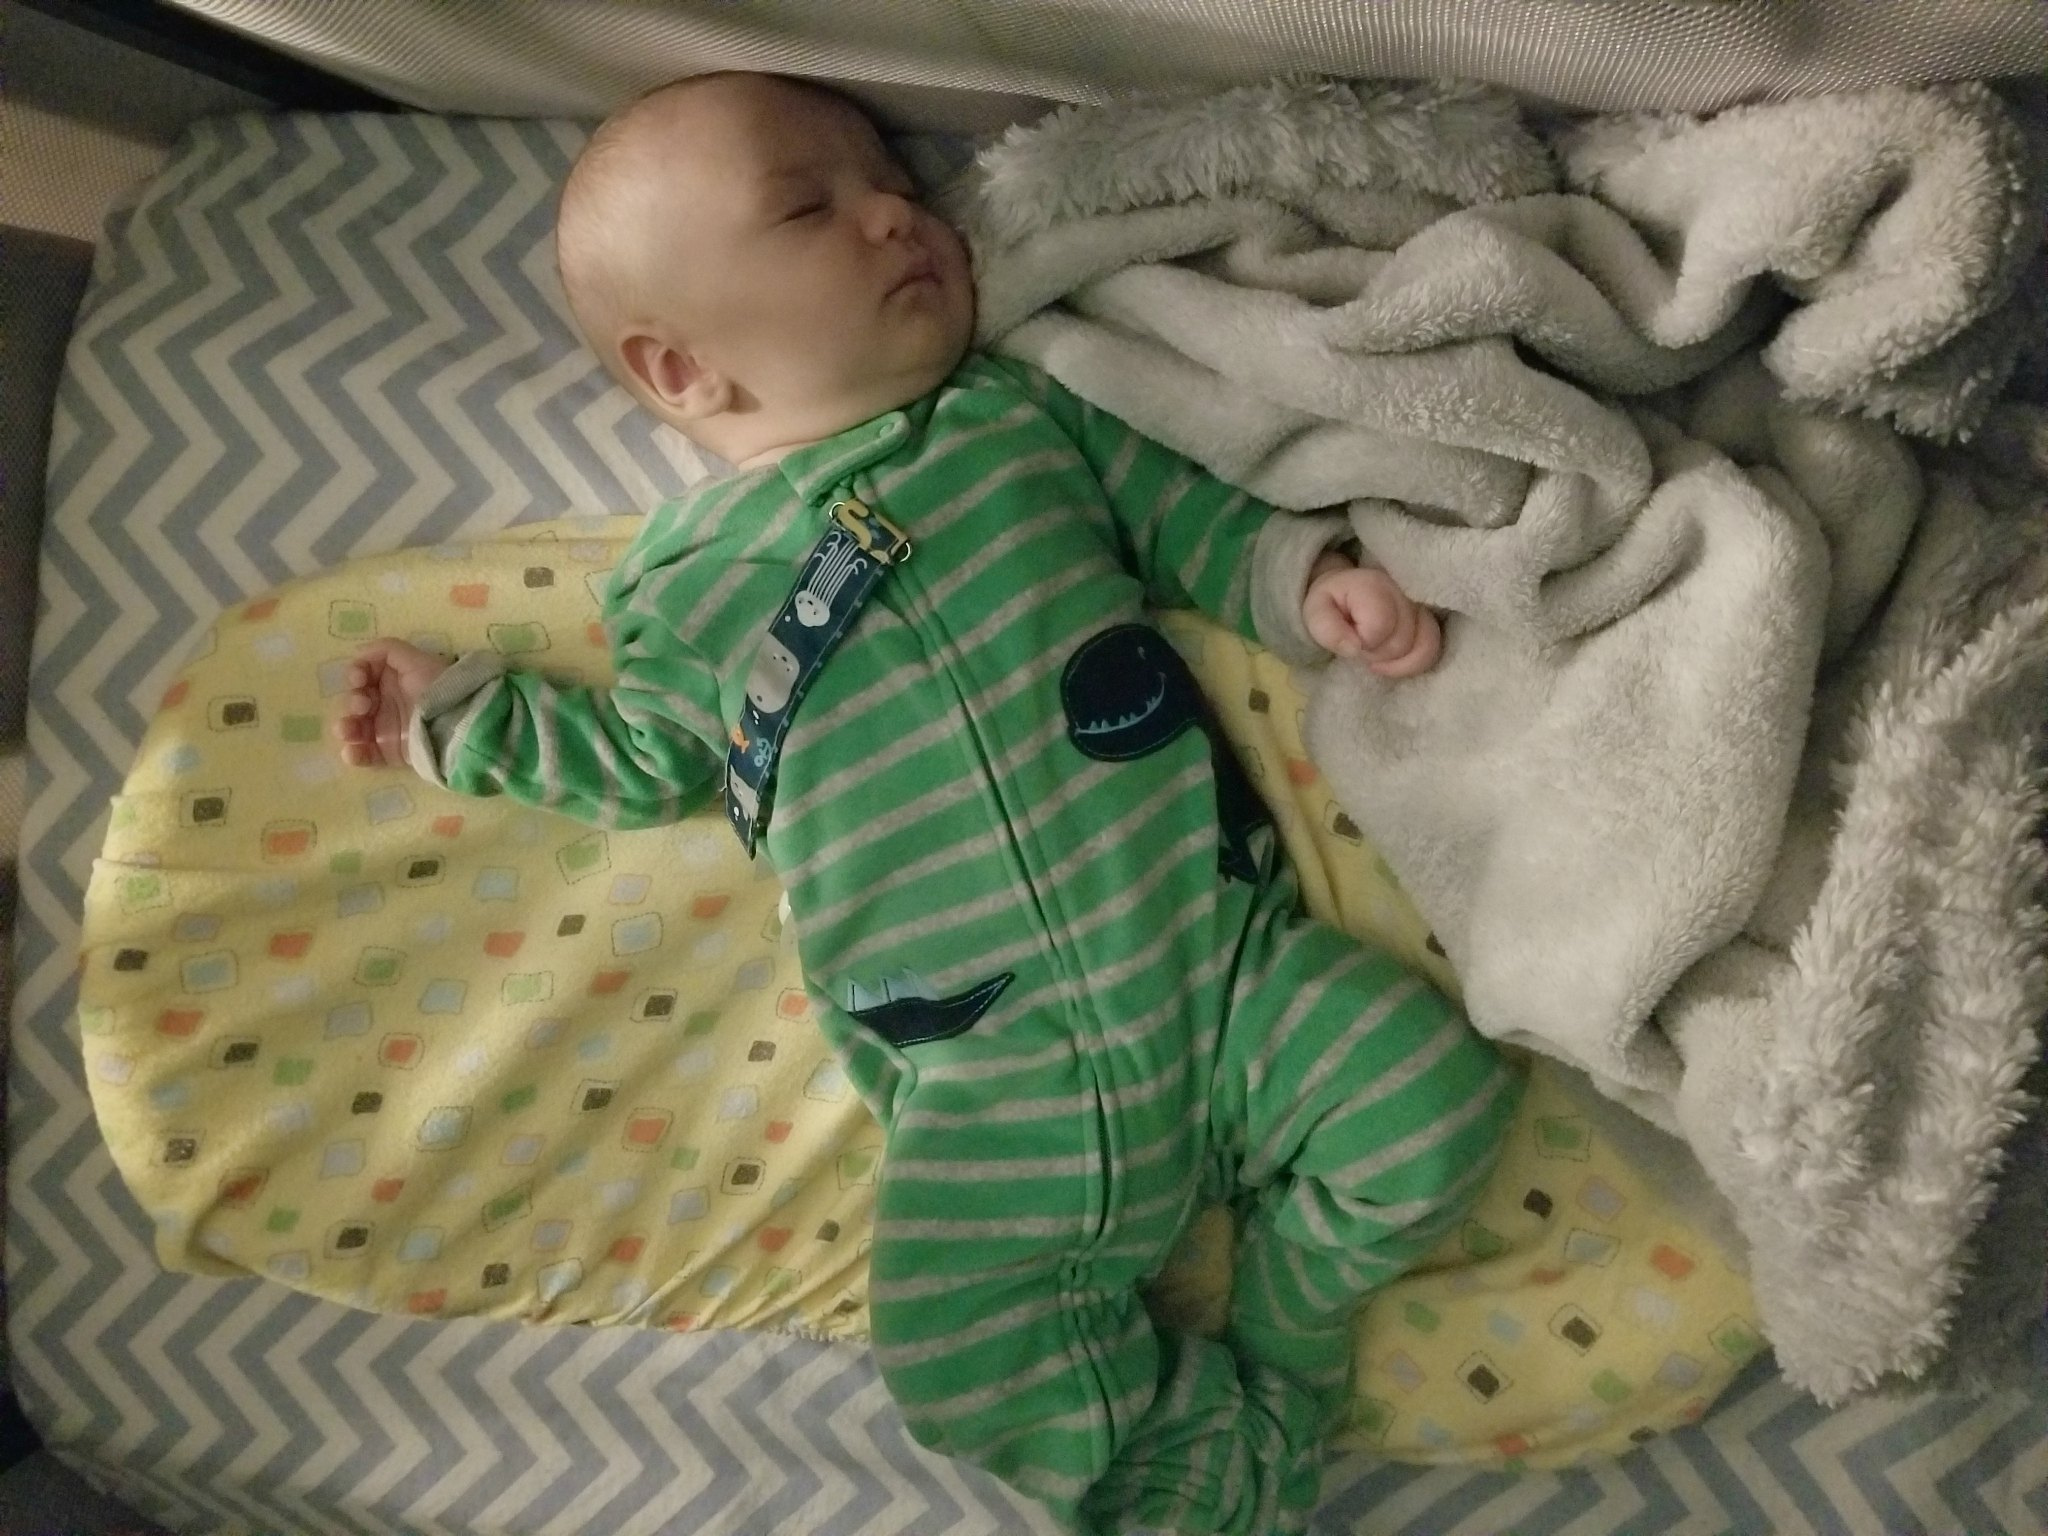 Learn about our experience dealing with sleep over the first 3 months of motherhood, plus tips for getting your baby to sleep!